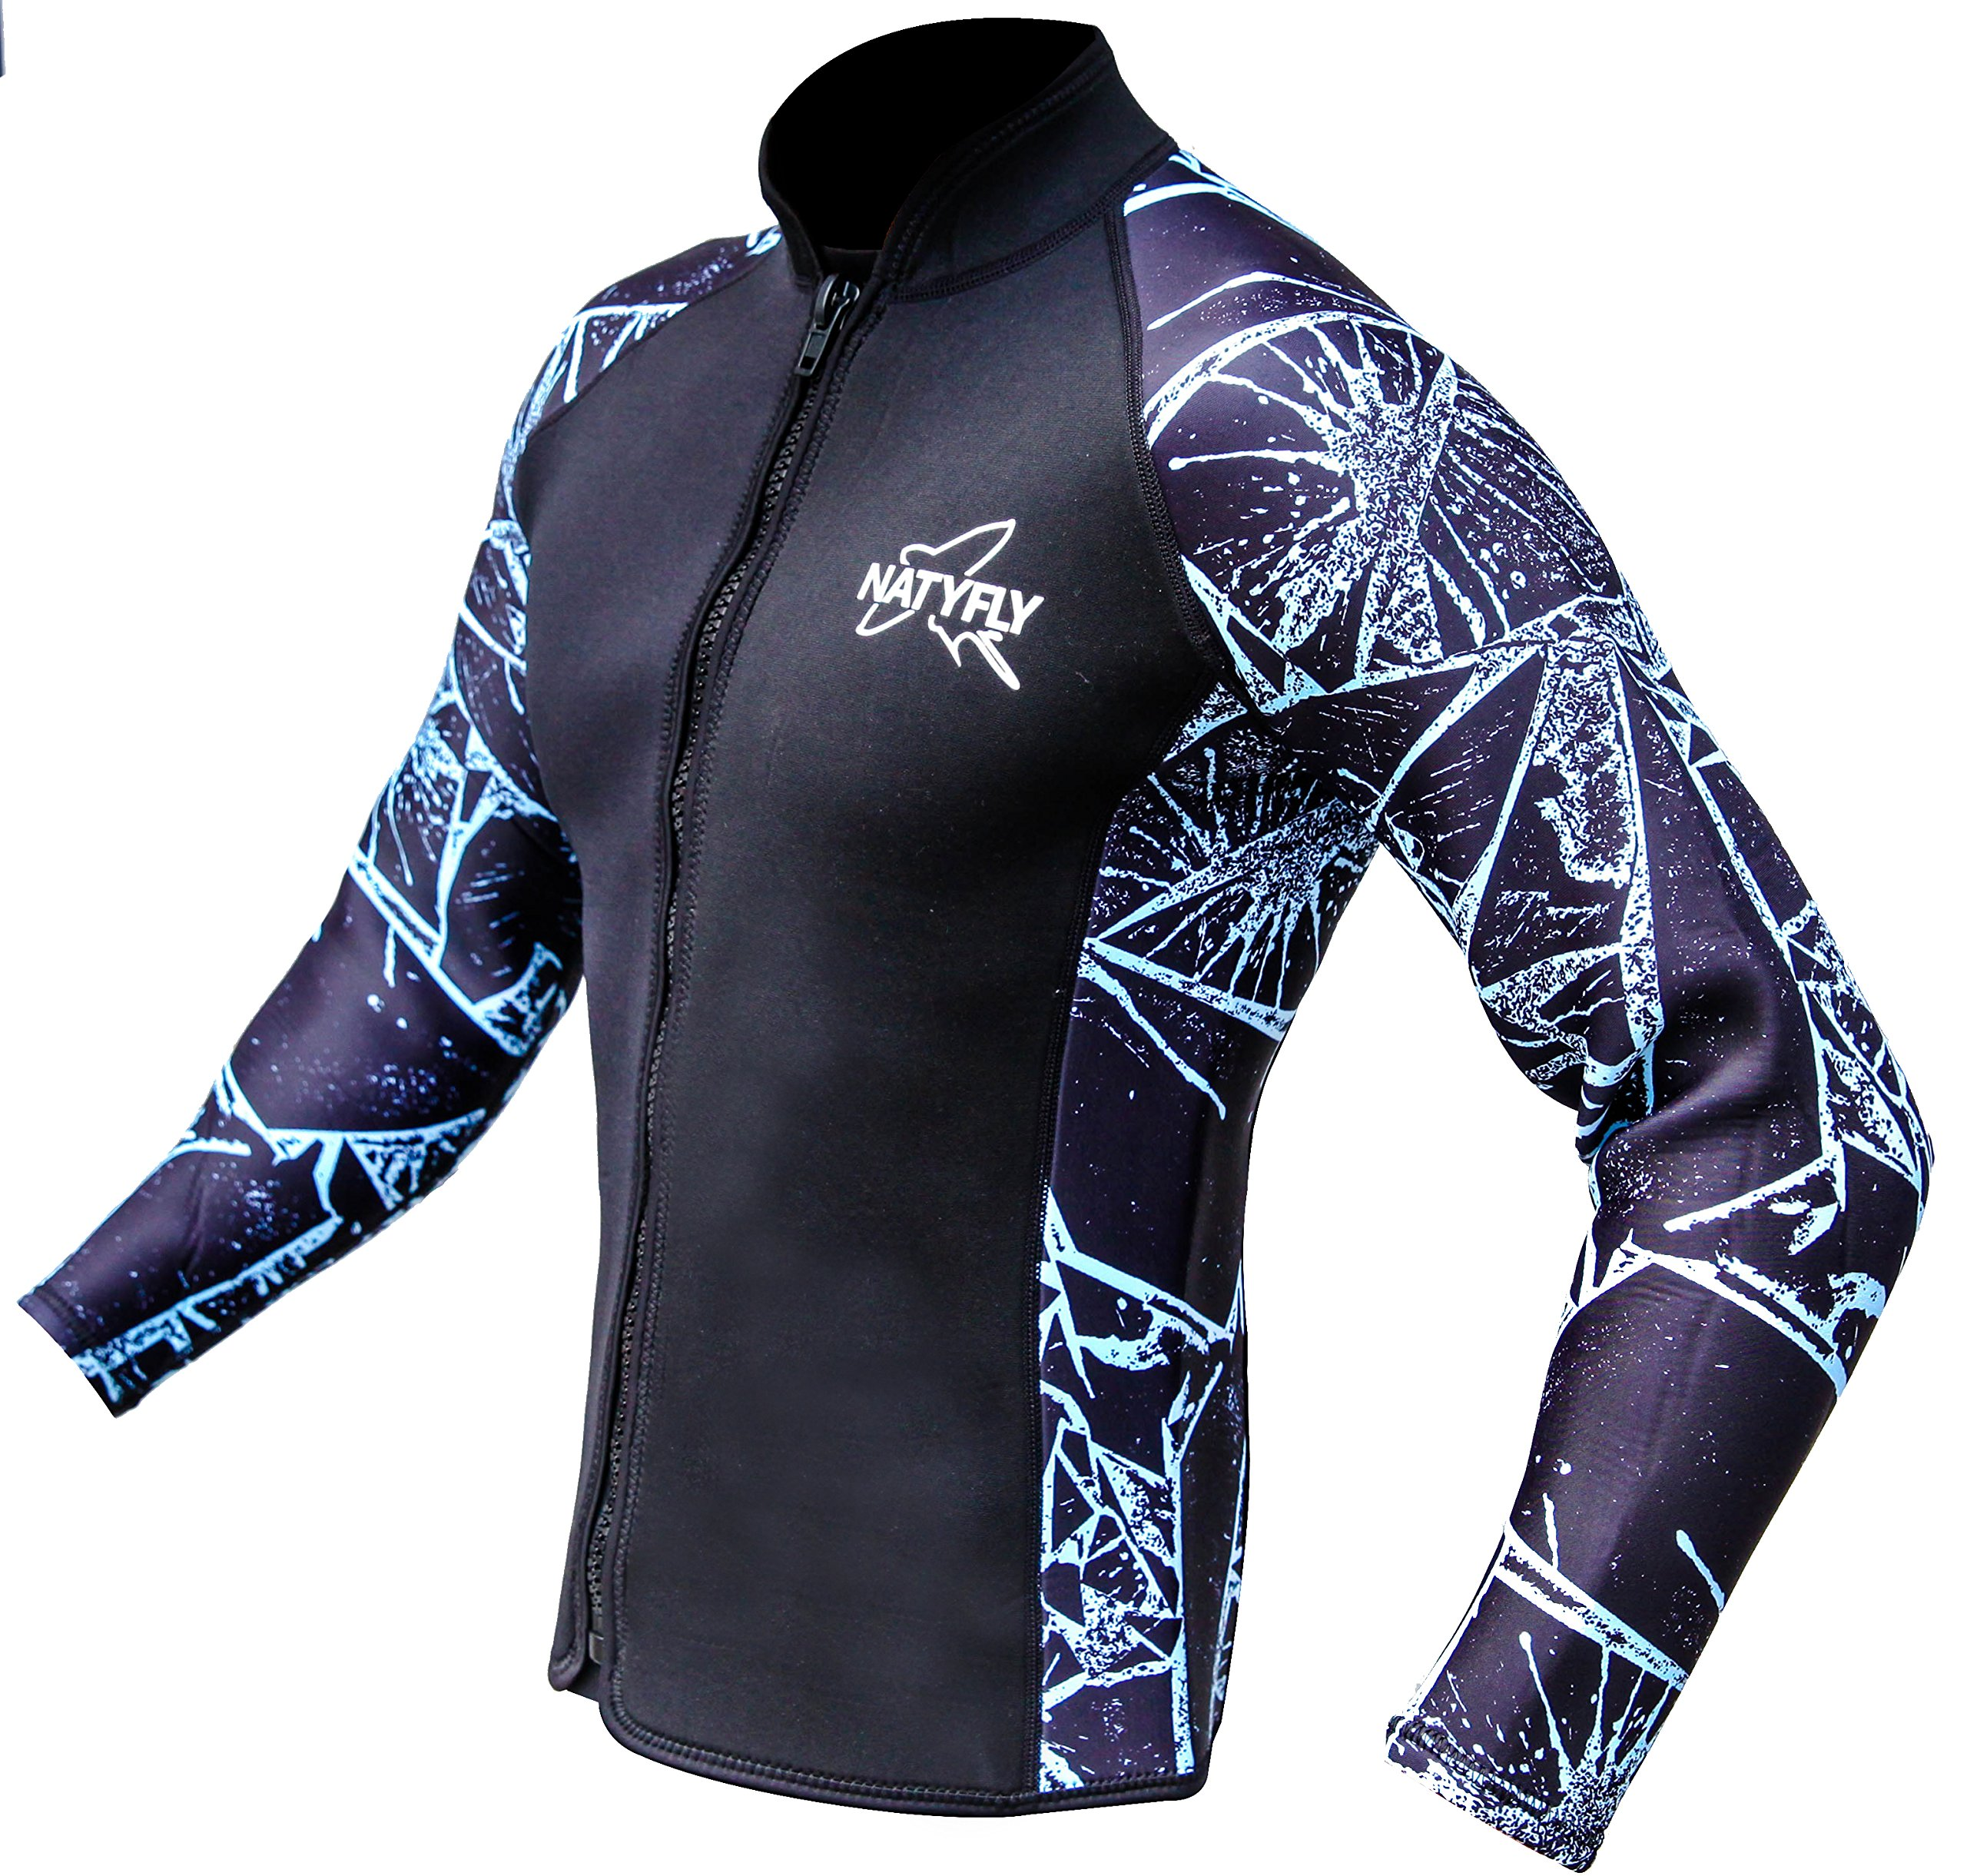 NATYFLY Wetsuit Jacket Long Sleeve Neoprene Wetsuits Top for Men/Women (Blue-Neoprene, 2X-Large) by NATYFLY